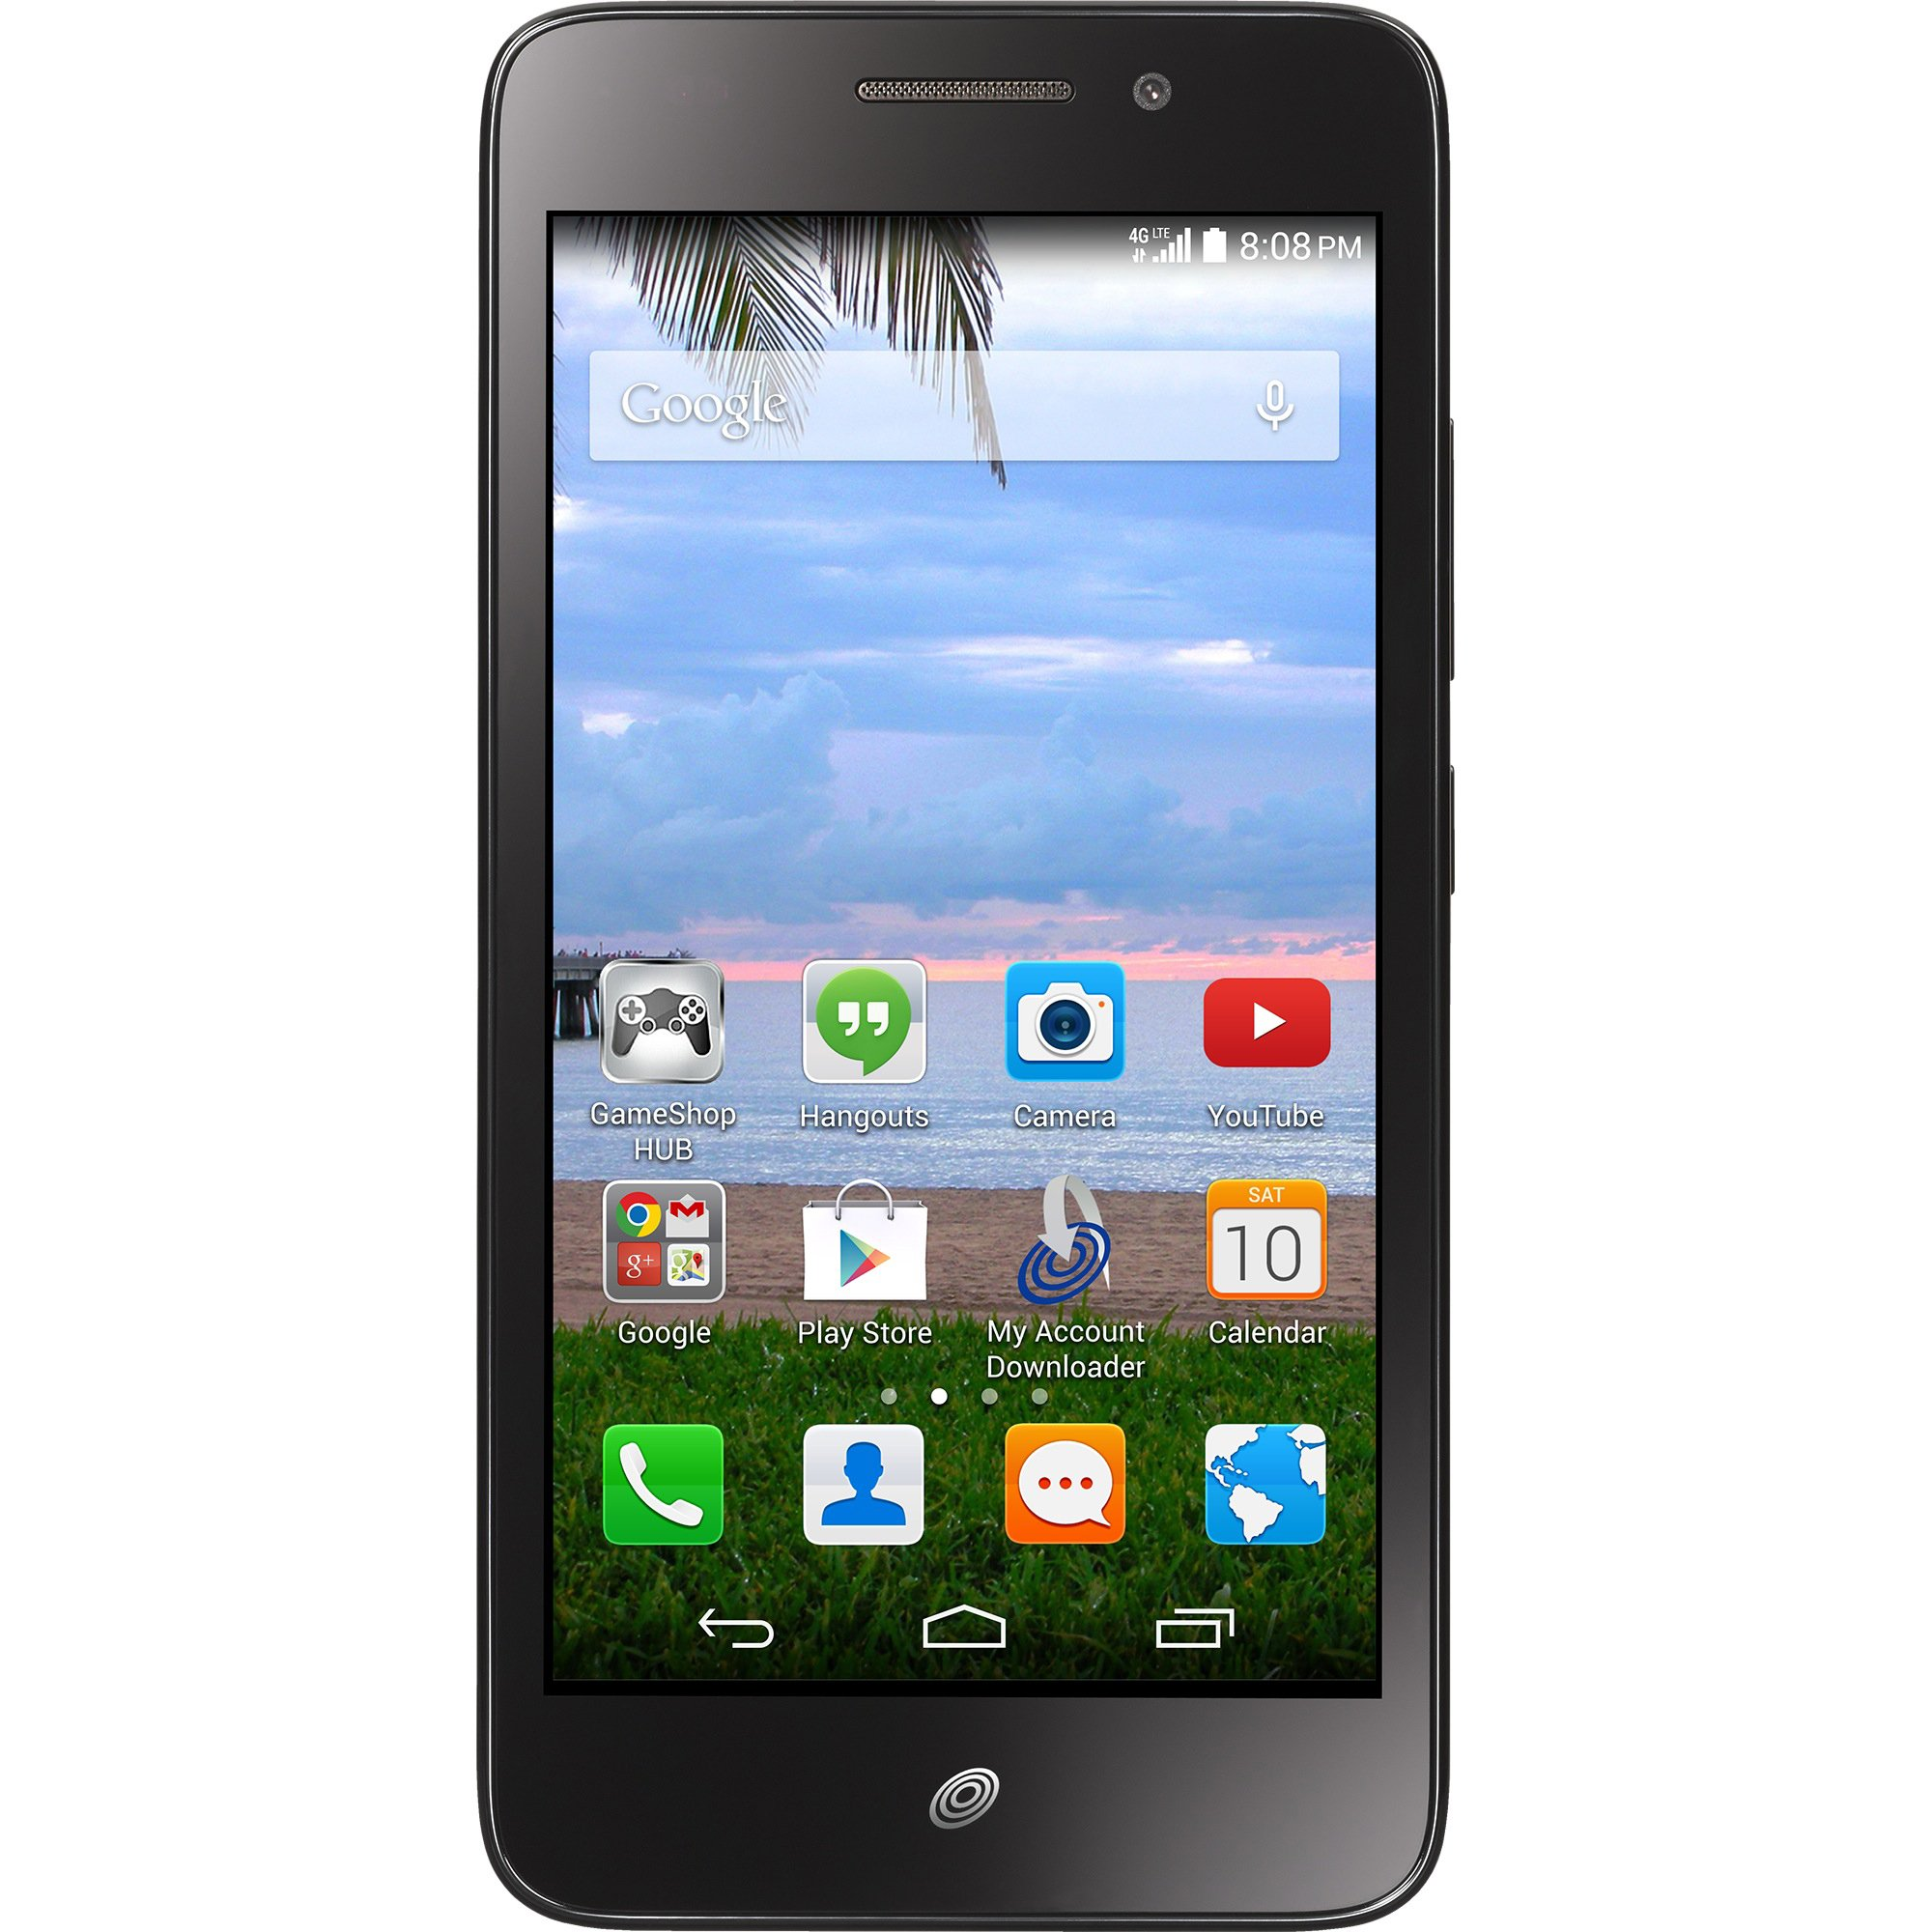 Net10 Huawei Pronto Android GSM 4G LTE Smartphone by Net10